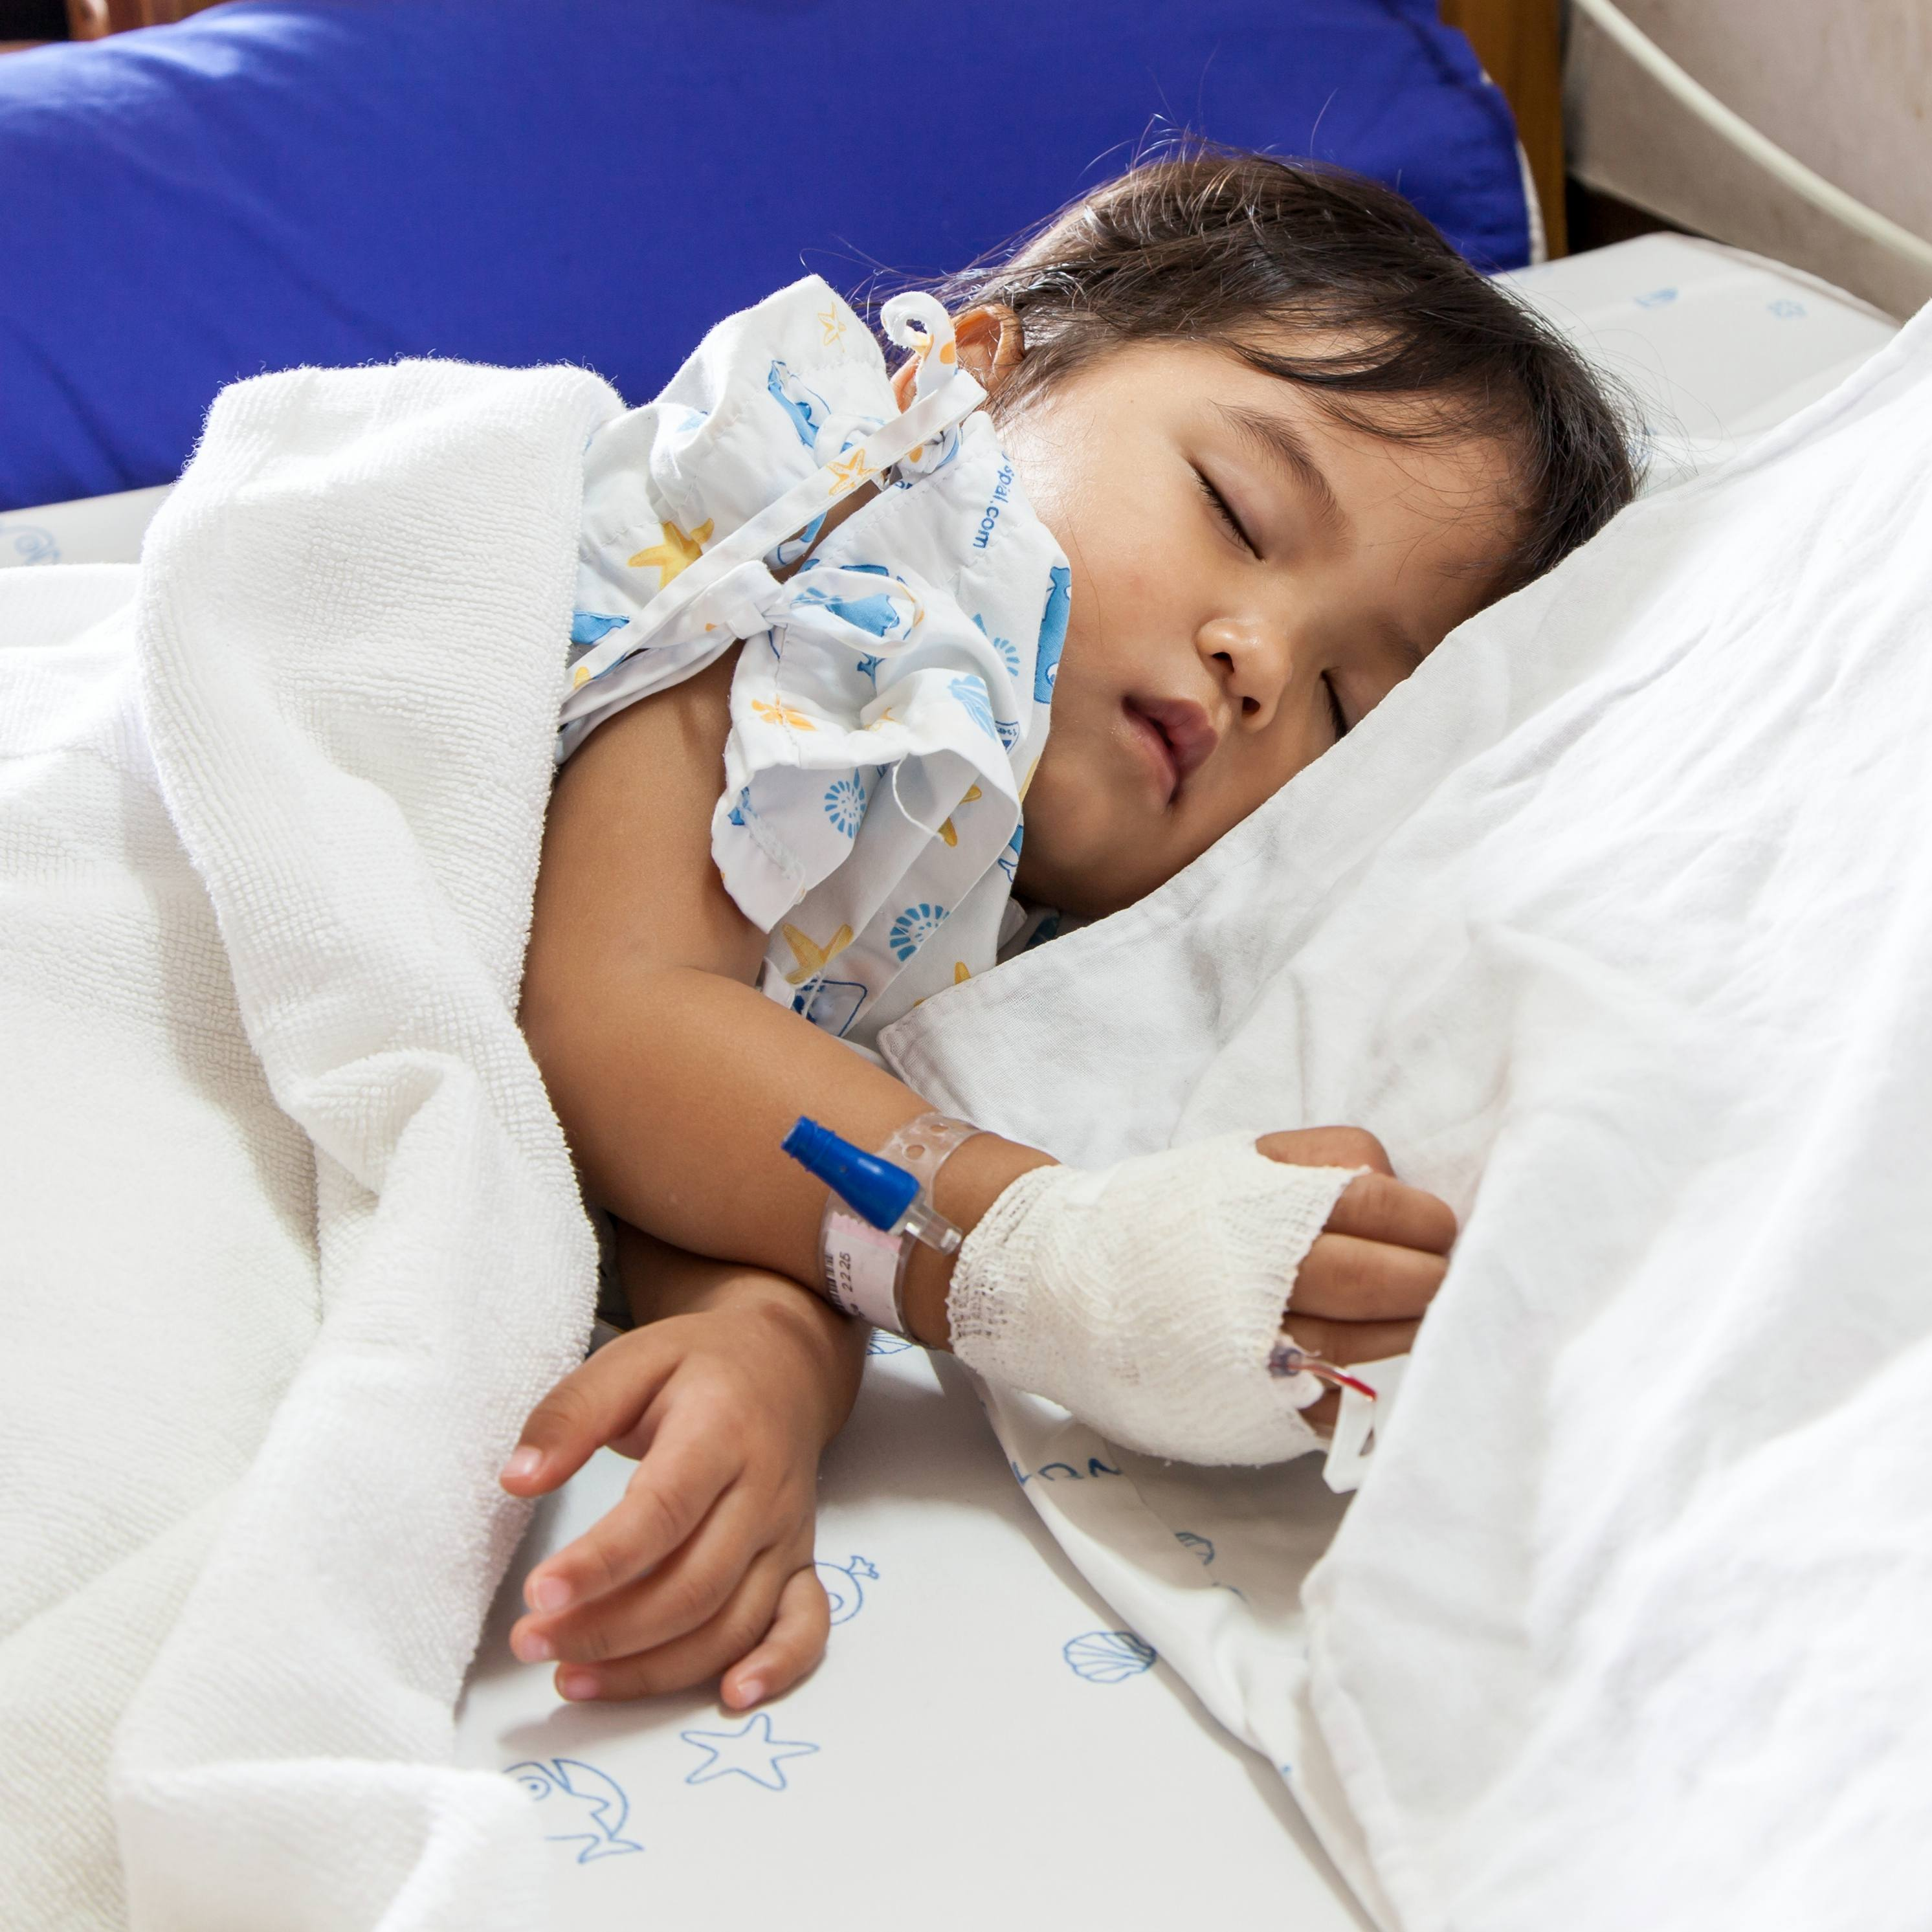 a sick child sleeping in a hospital bed with an IV in his or her hand